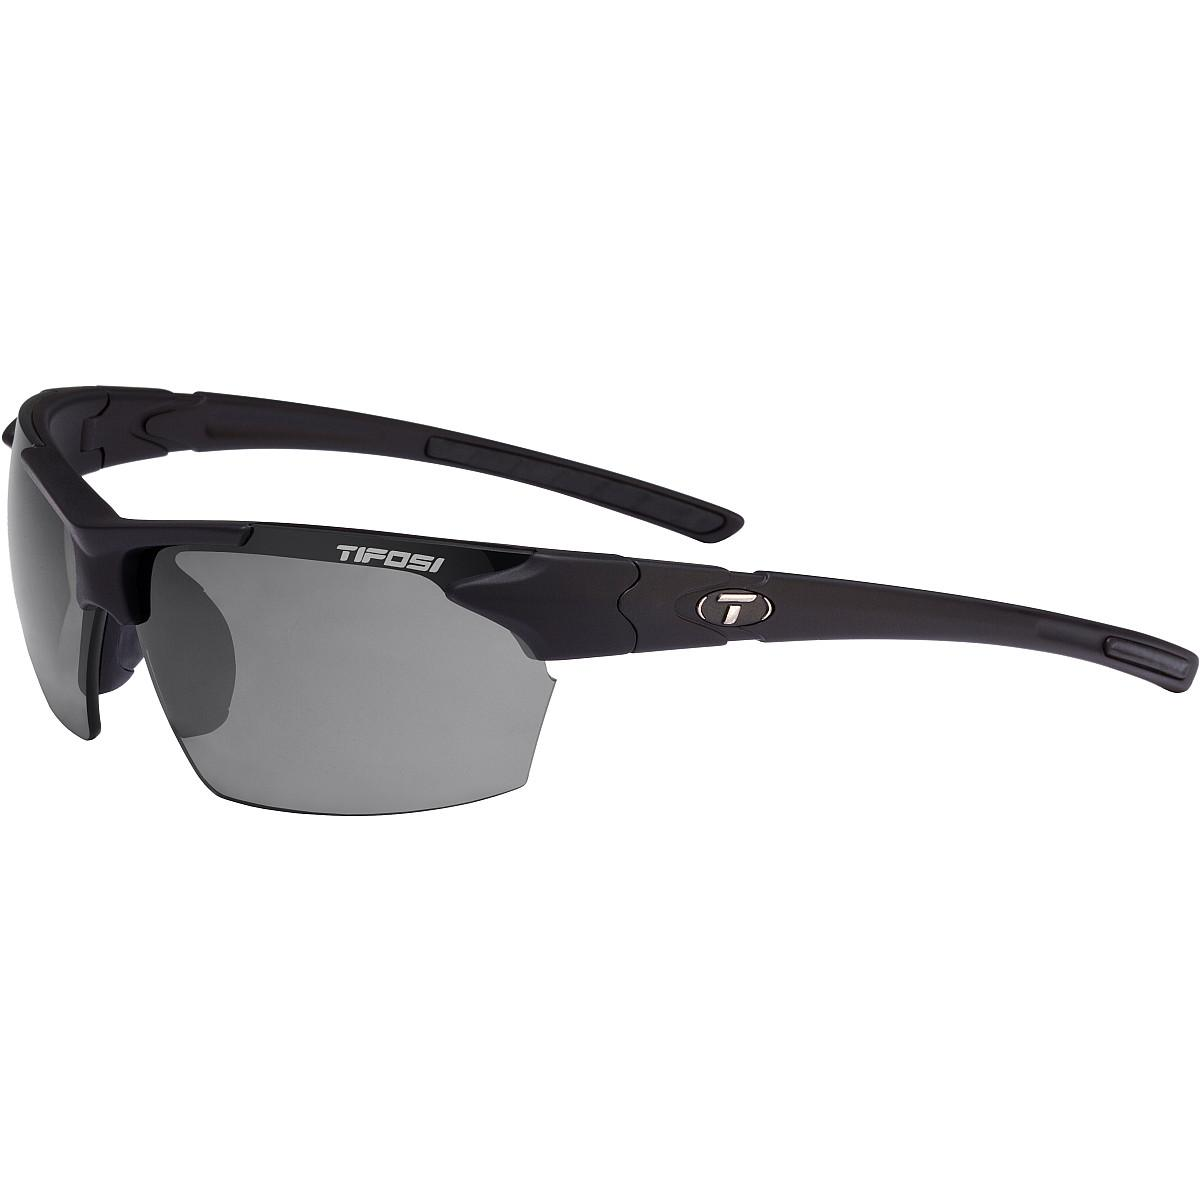 bdb36f8bec8 Tifosi 210500151 Jet Polarized Sunglasses - Matte Black